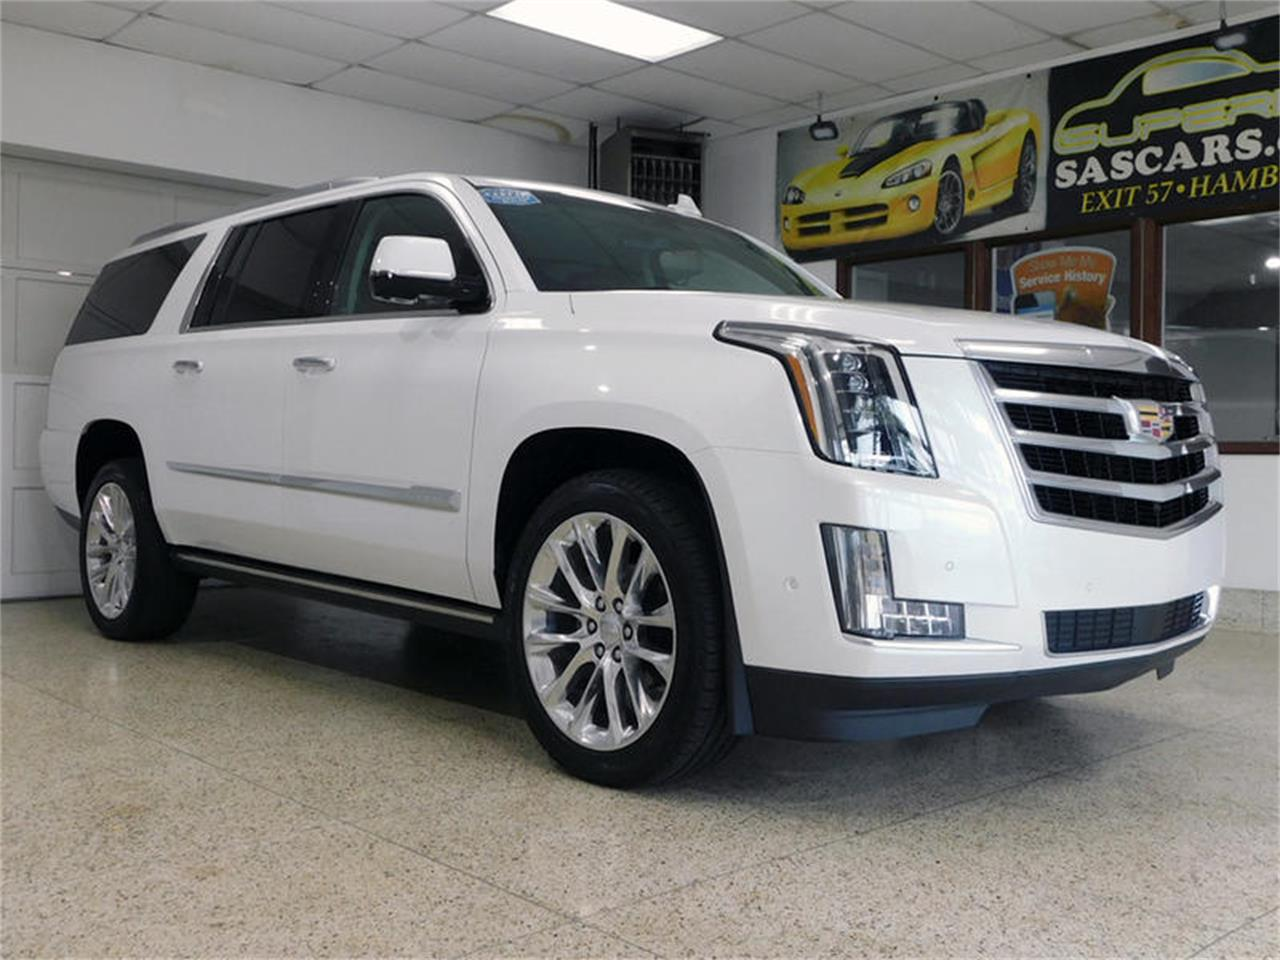 2017 Cadillac Escalade (CC-1264699) for sale in Hamburg, New York